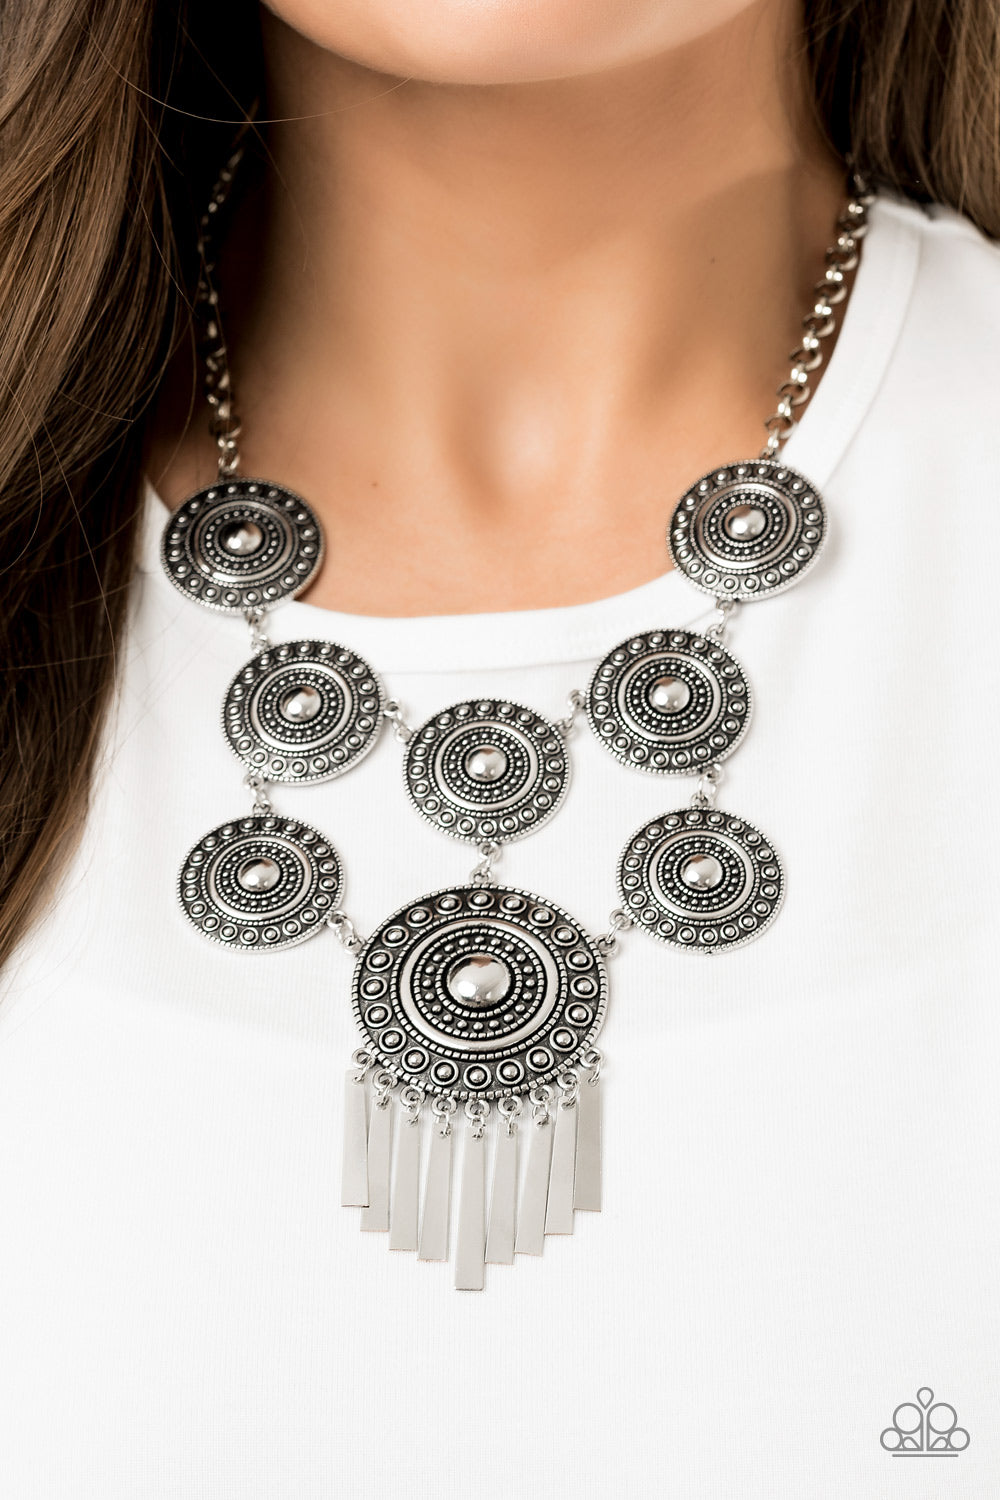 Paparazzi - Modern Medalist Necklace Set - Classy Jewels by Linda